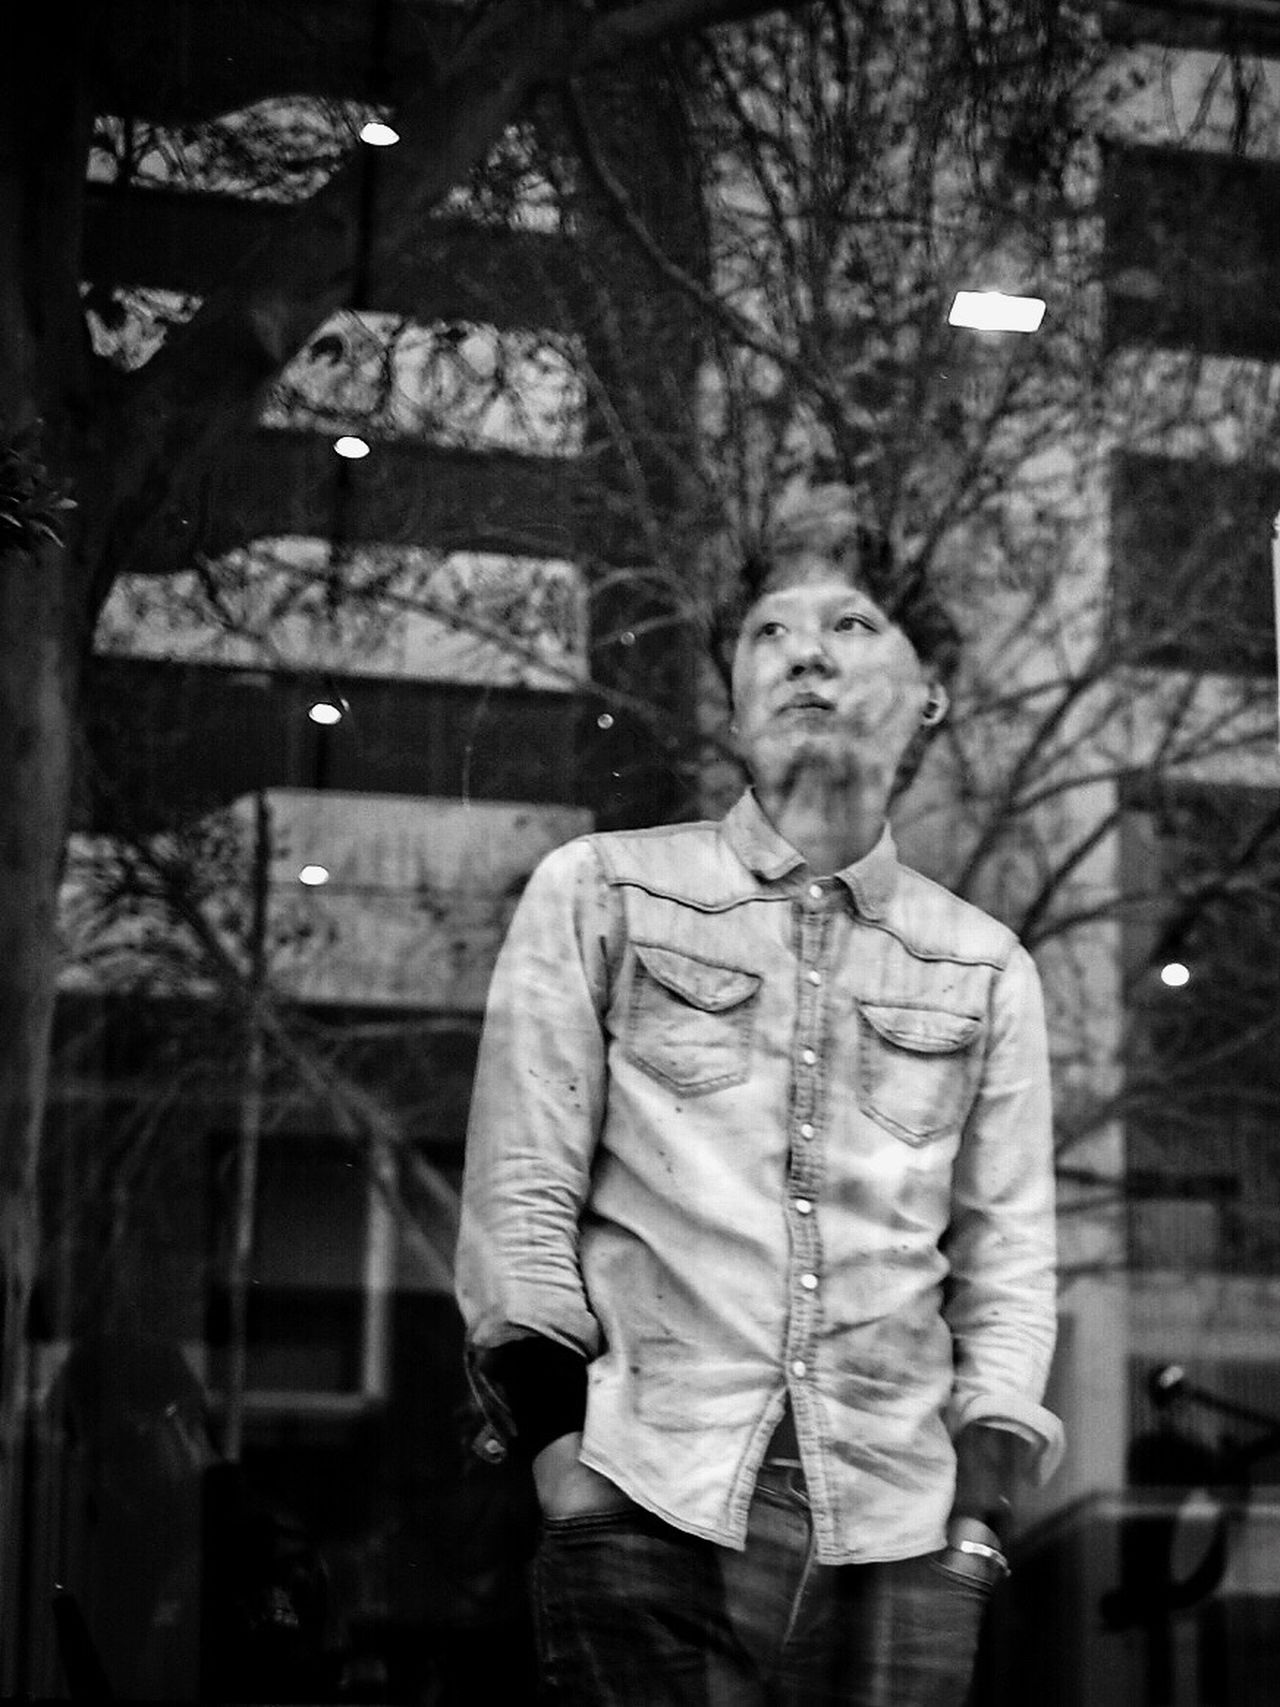 Ataraxy // Melbourne One Person One Man Only Hands In Pockets Front View Only Men Real People Men Looking At Camera Portrait Lifestyles Adult Tree Young Adult Outdoors Well-dressed Businessman Standing Corporate Business Adults Only People Streetphotography Blackandwhite Tree Reflection The Street Photographer - 2017 EyeEm Awards